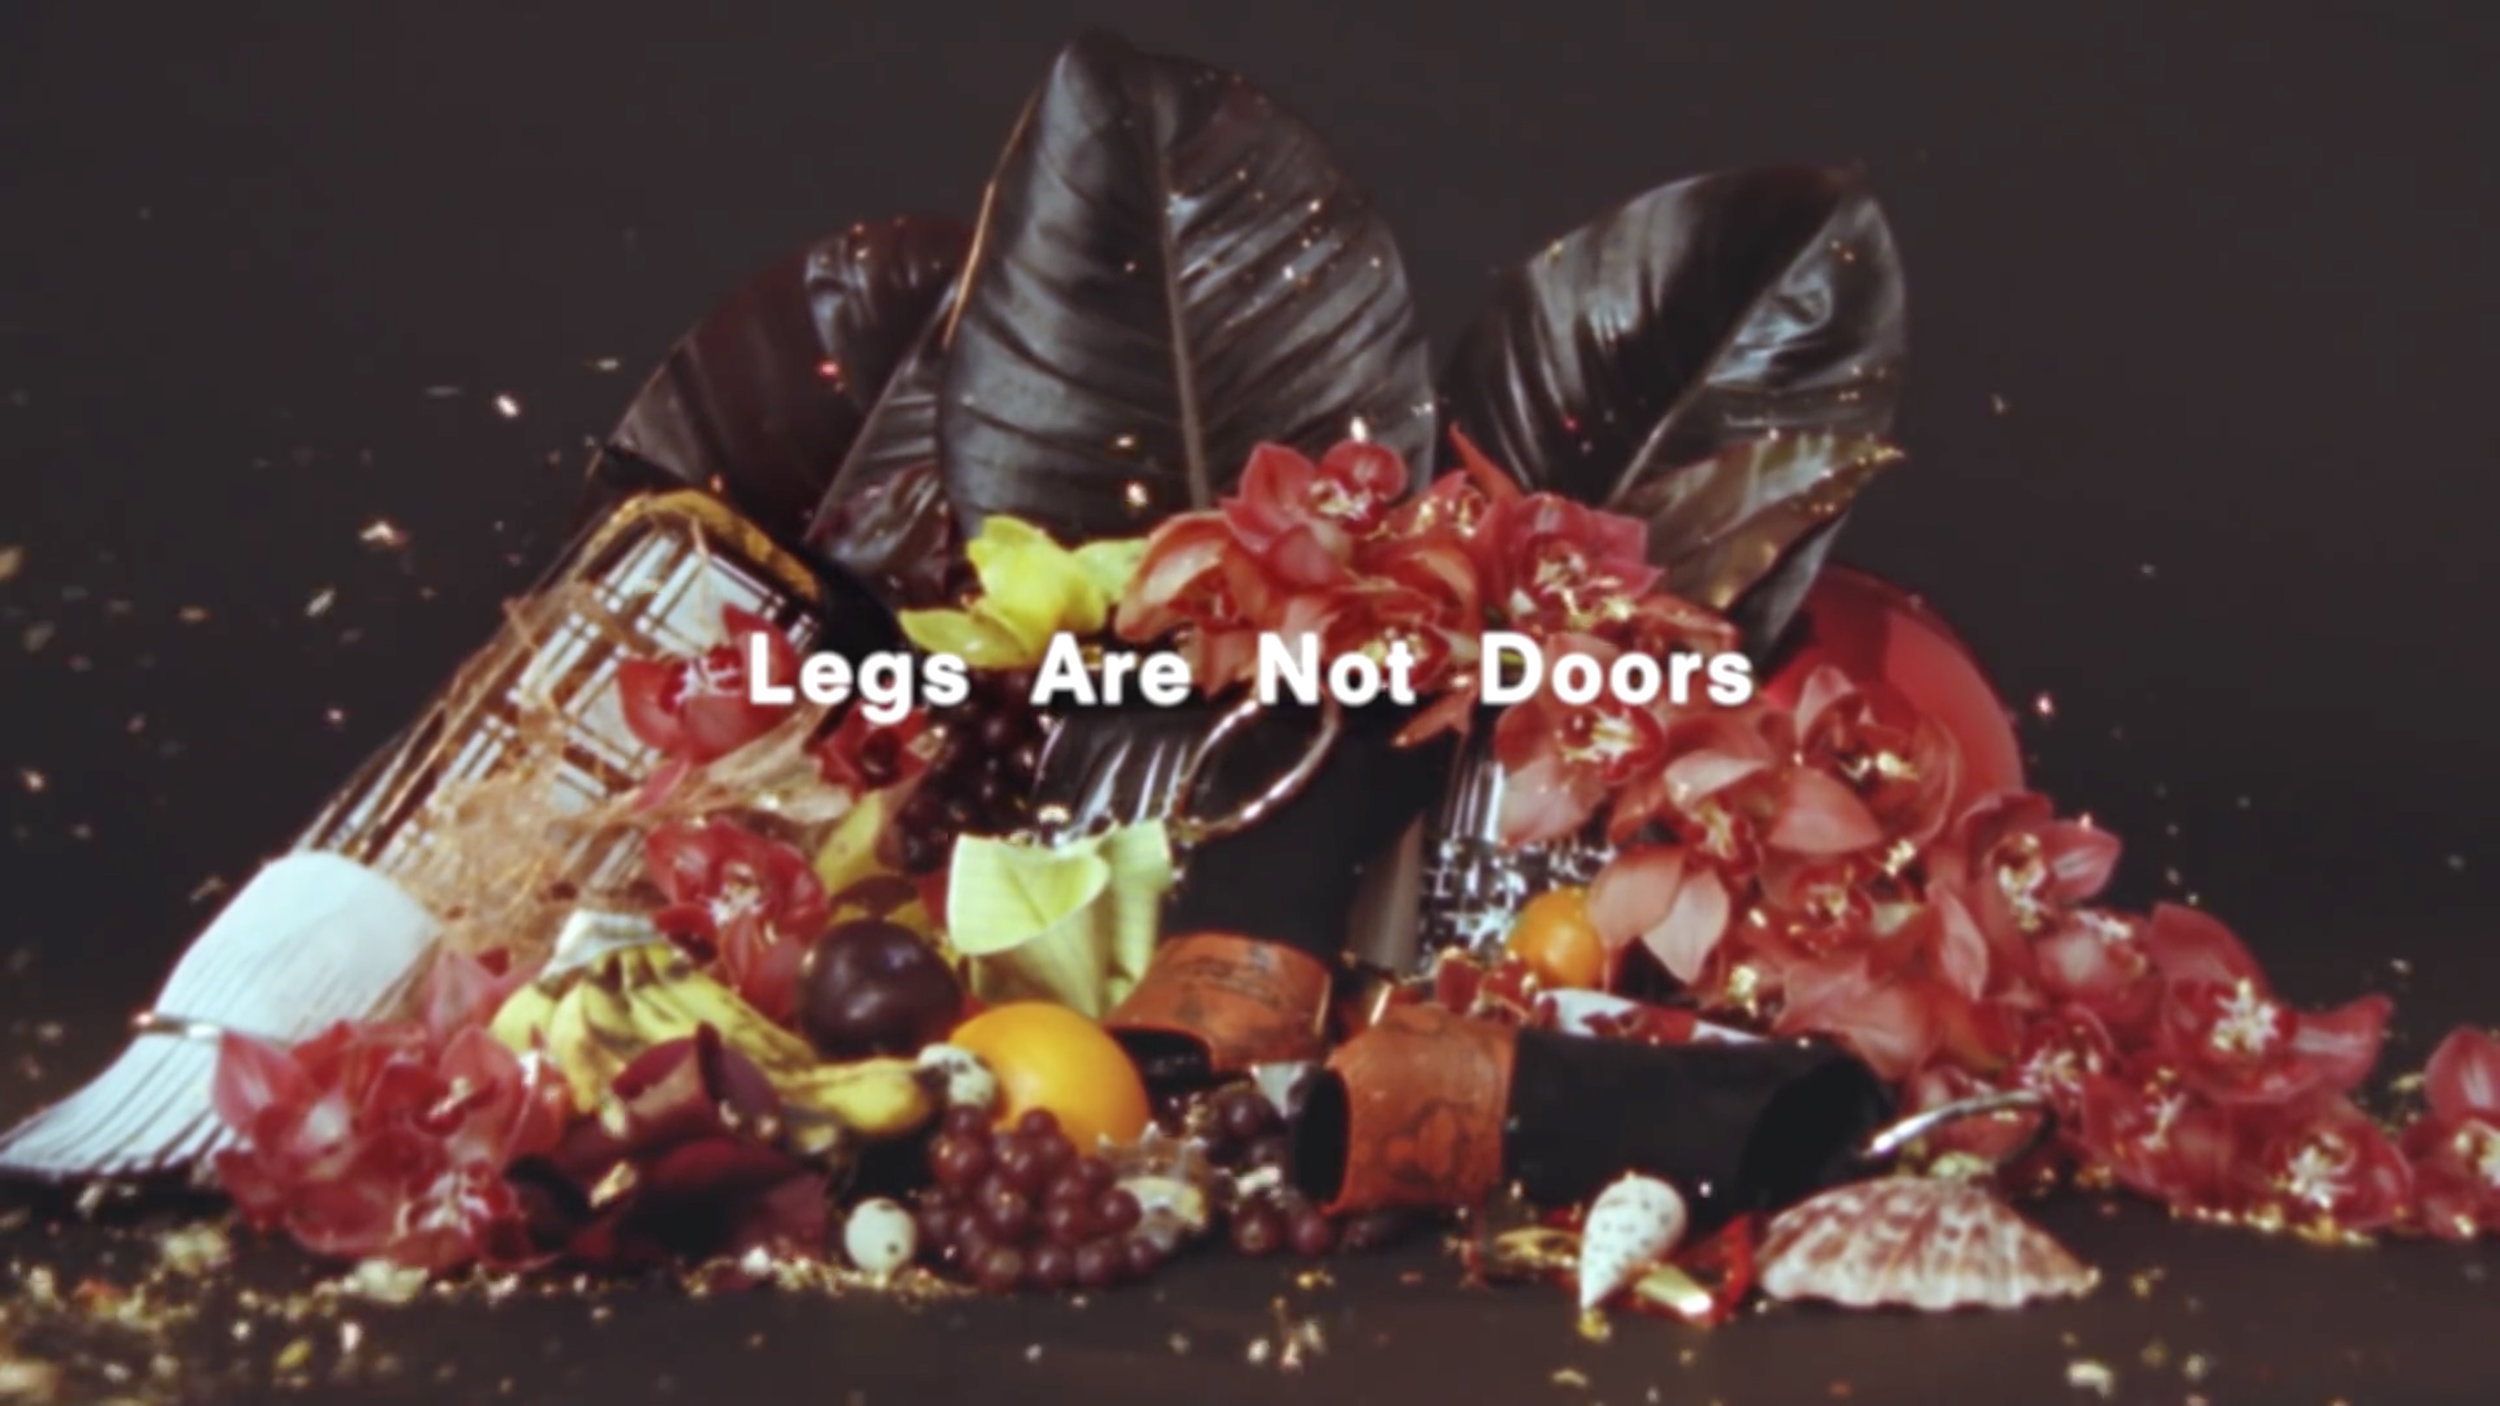 Proenza Schouler X 'Legs Are Not Doors' by Harley Weir